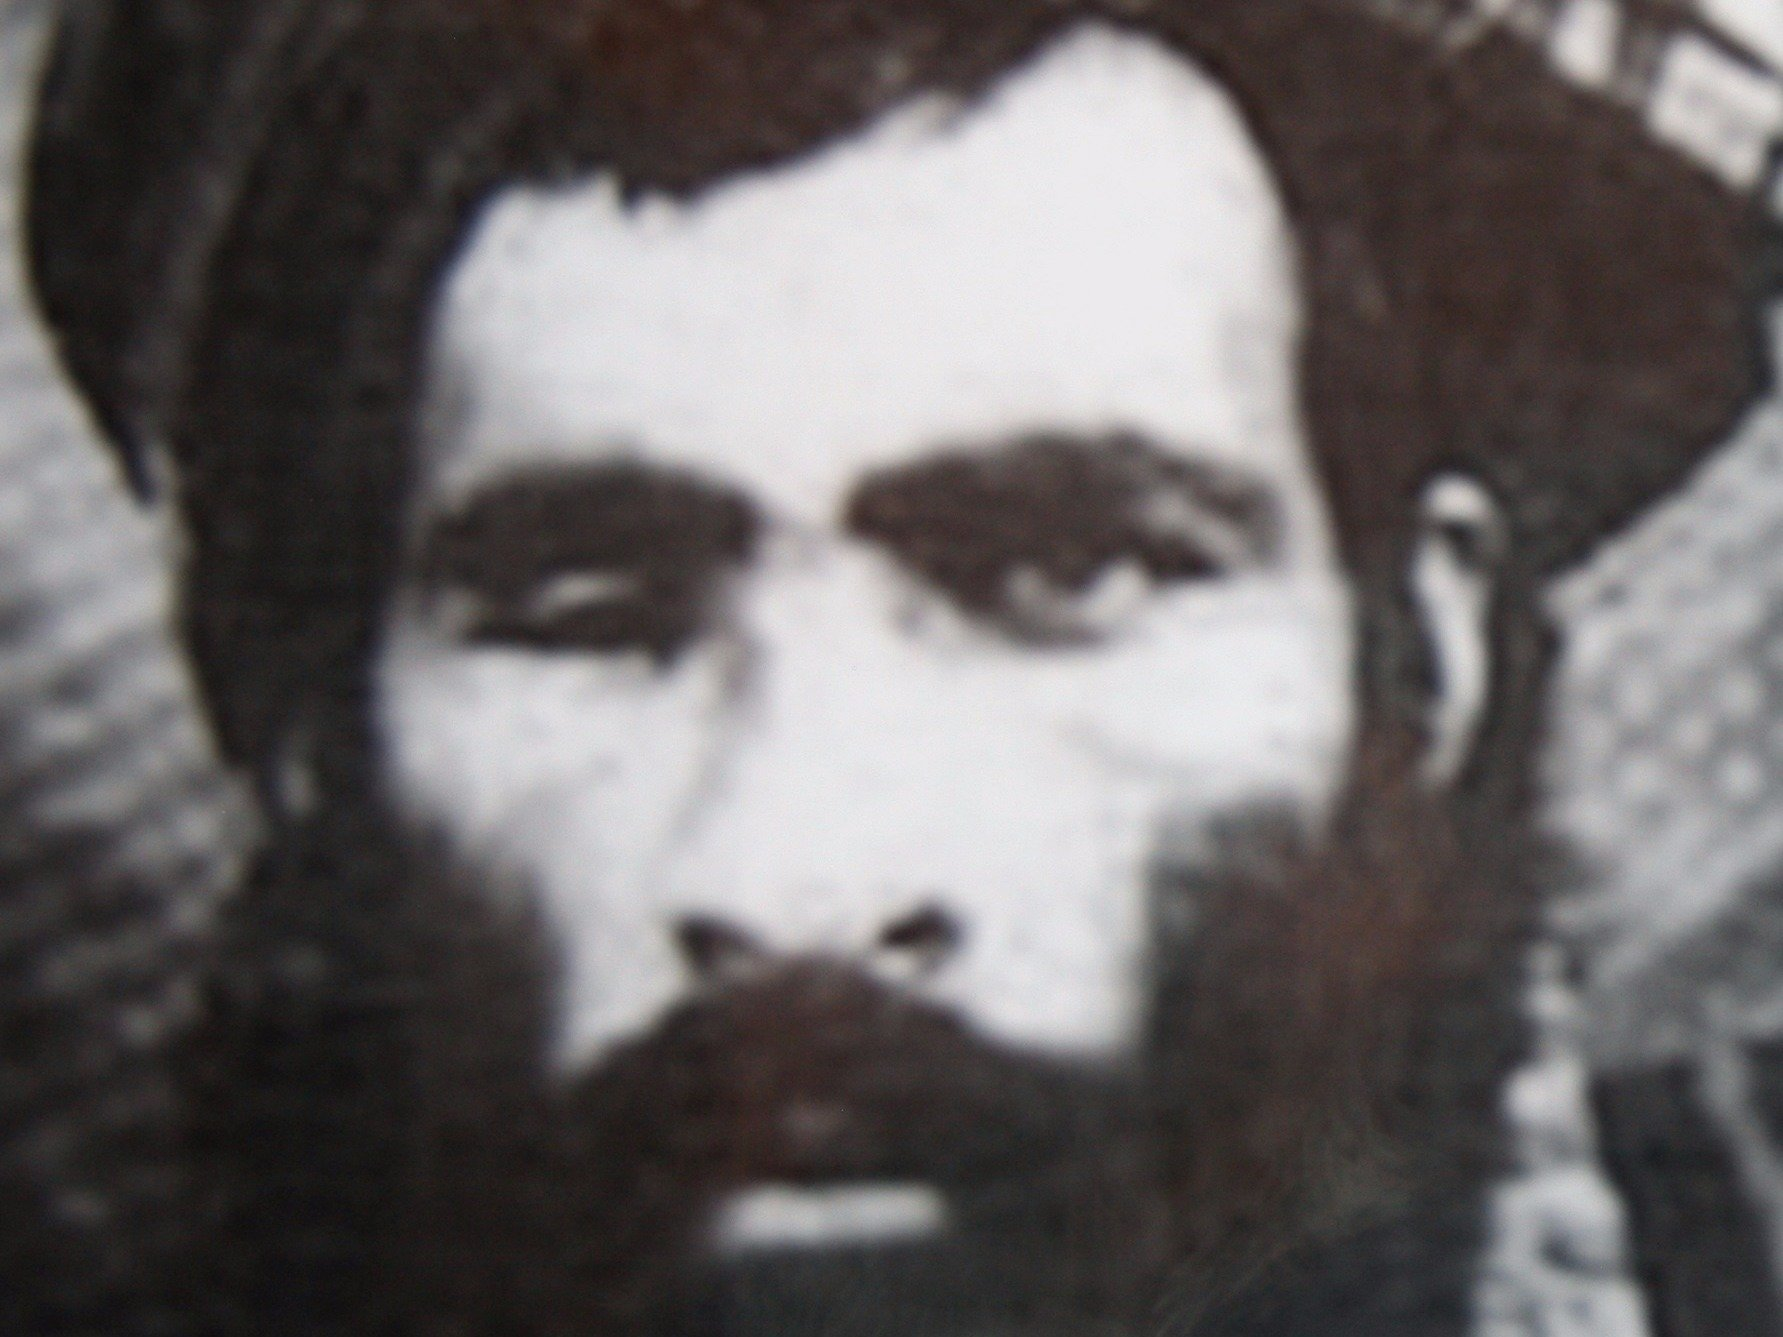 Mullah Omar is Dead. | Crimes of Empire